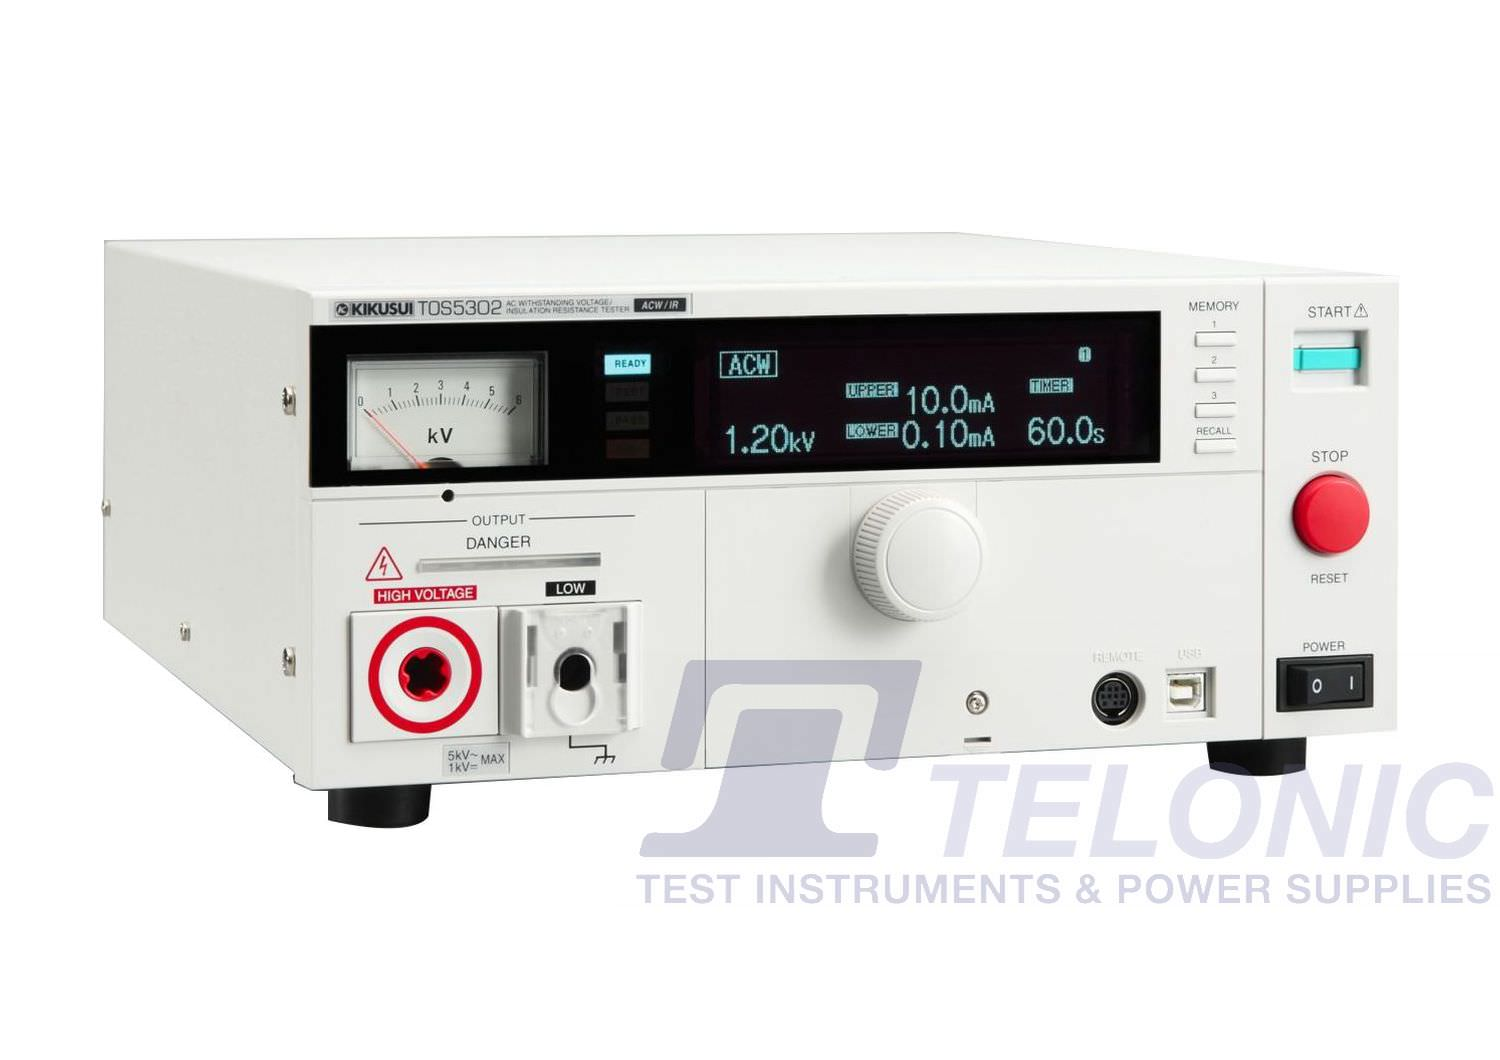 TOS5302   [5kV AC] Flash Tester (HIPOT Tester) and Insulation Resistance Tester